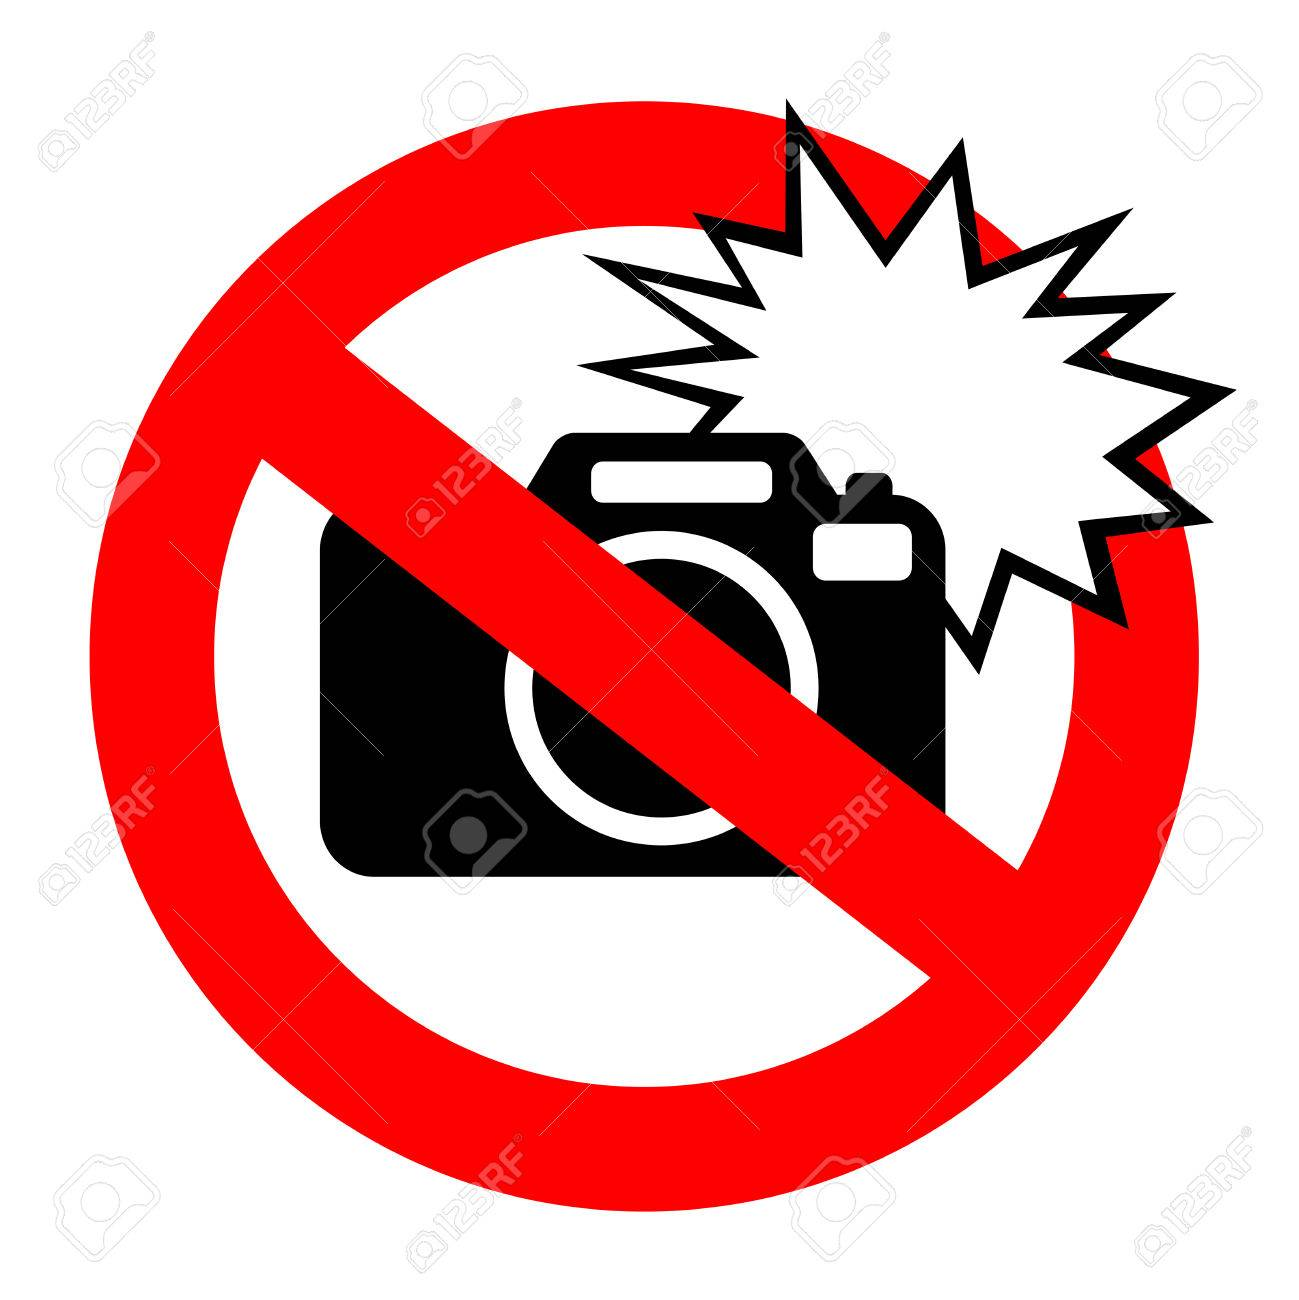 Camera Flash Clipart